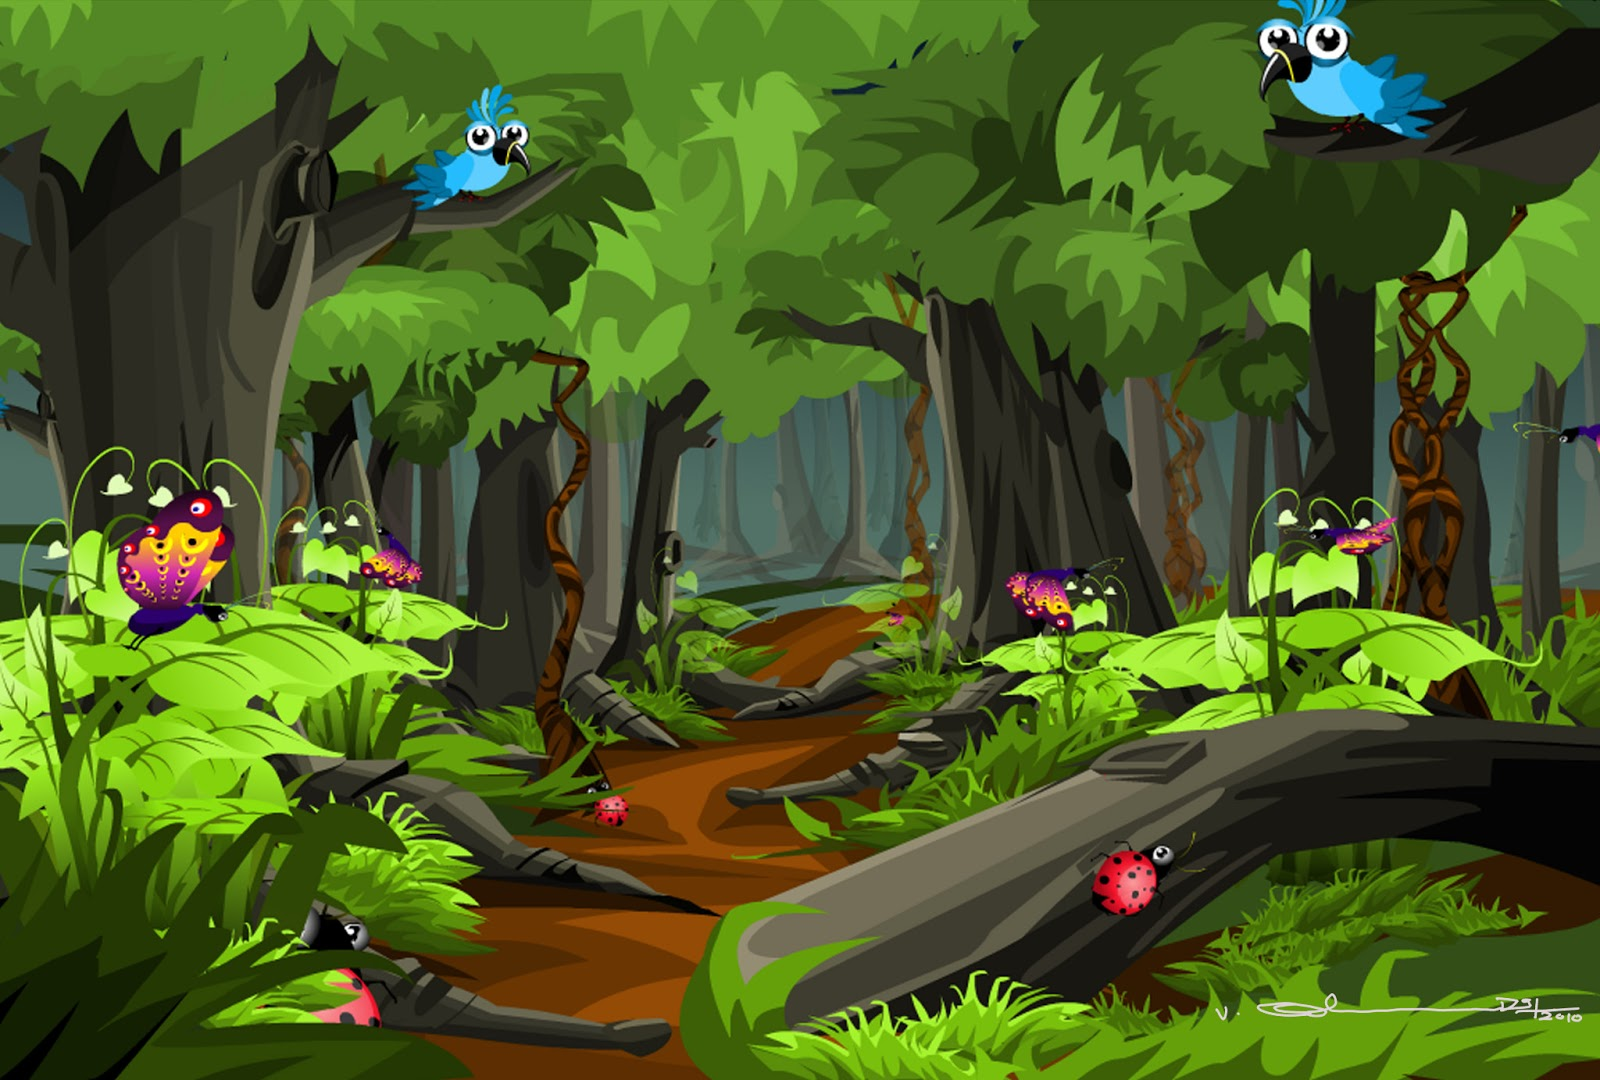 Images for Gt Cartoon Forest Background 1600x1080PX ~ Cartoon ...: cliparts.co/forest-trees-cartoon